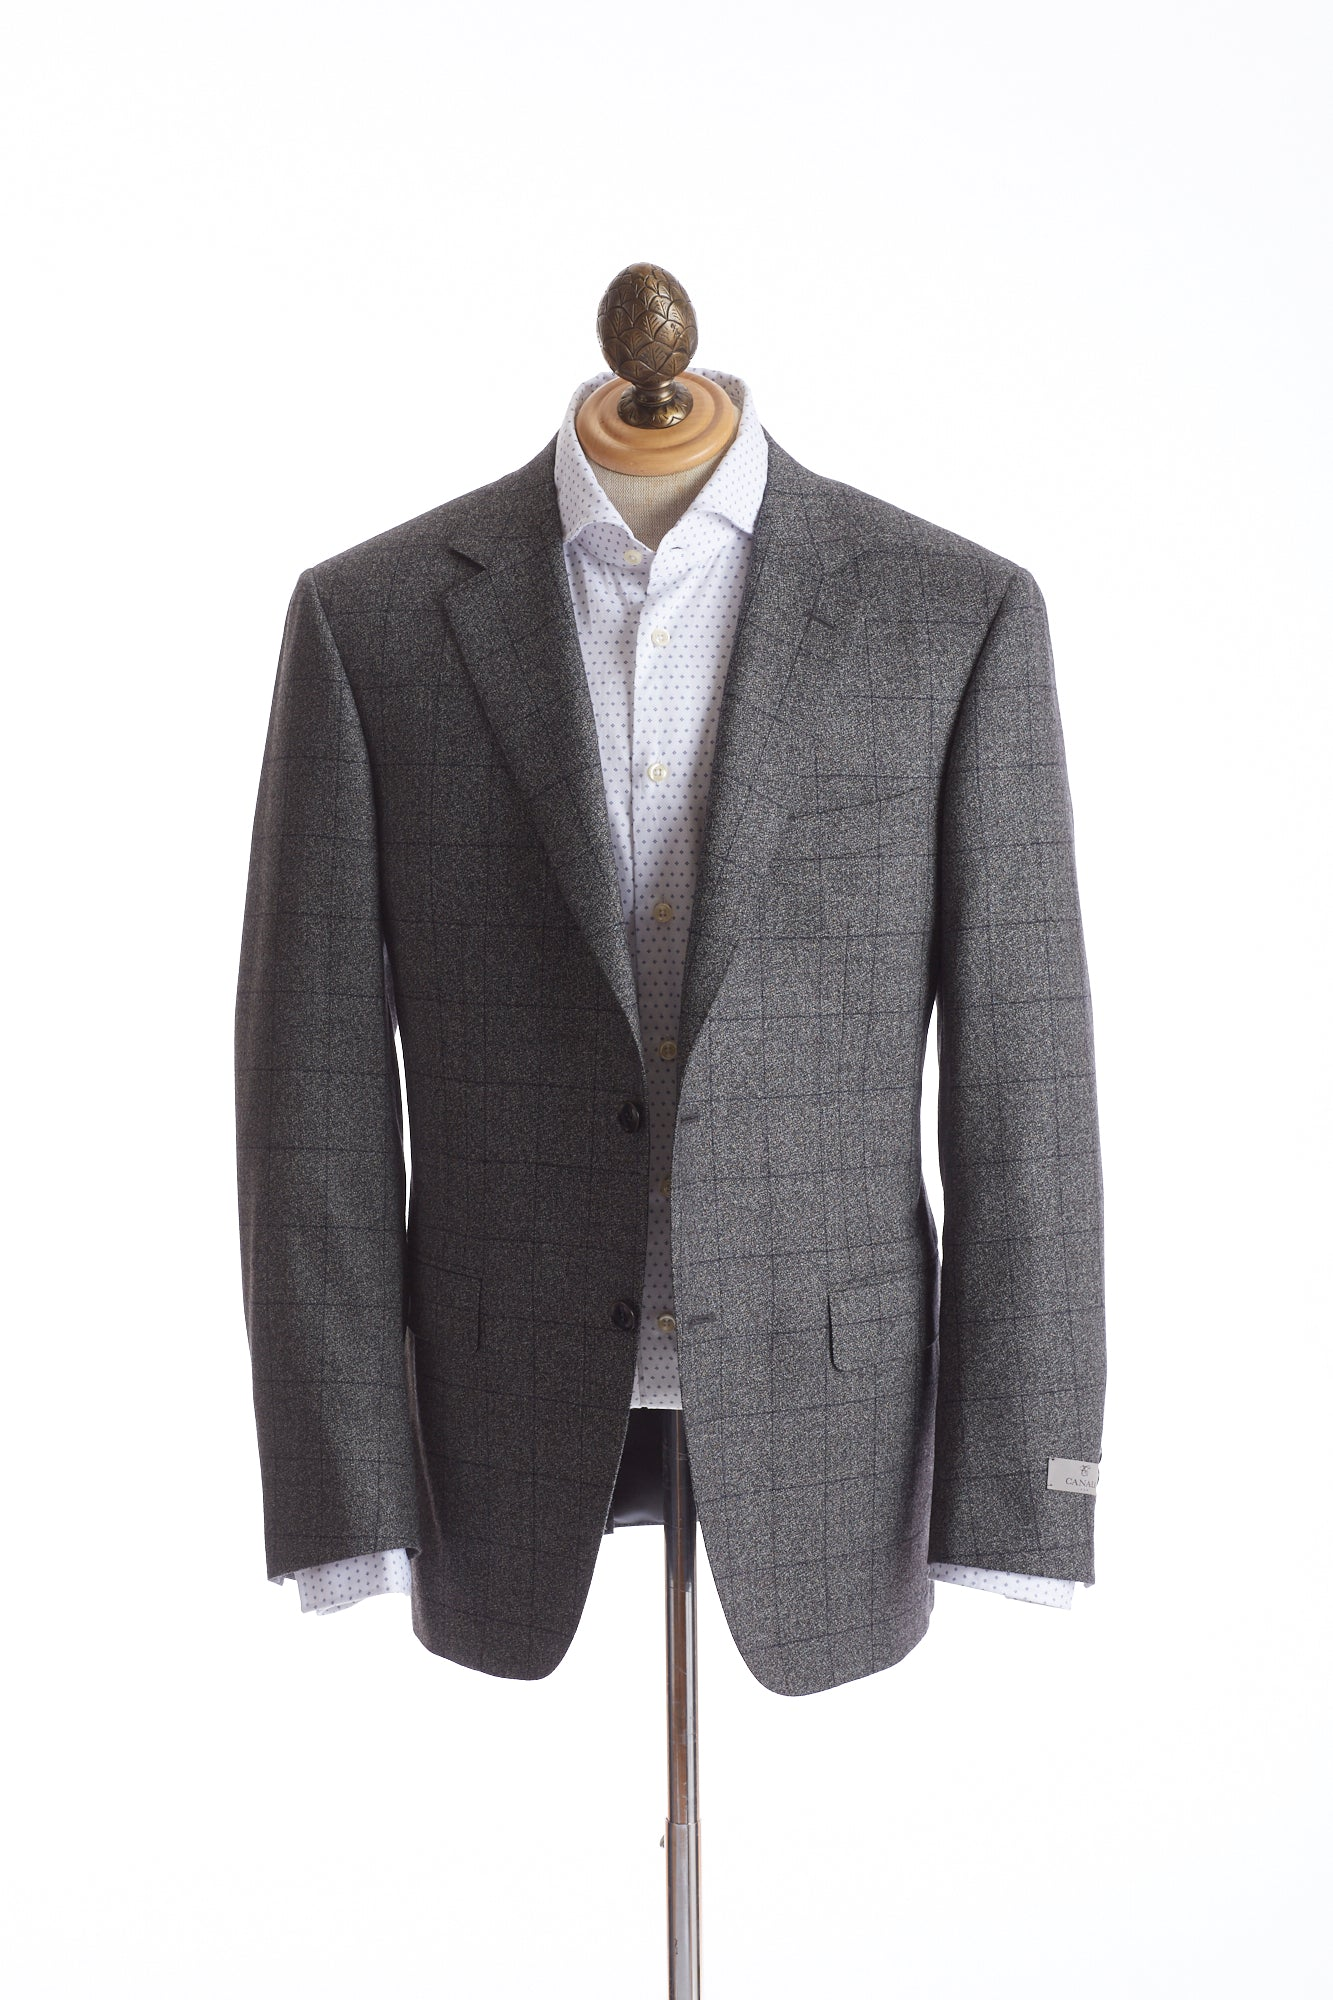 Canali Grey Windowpane Suit